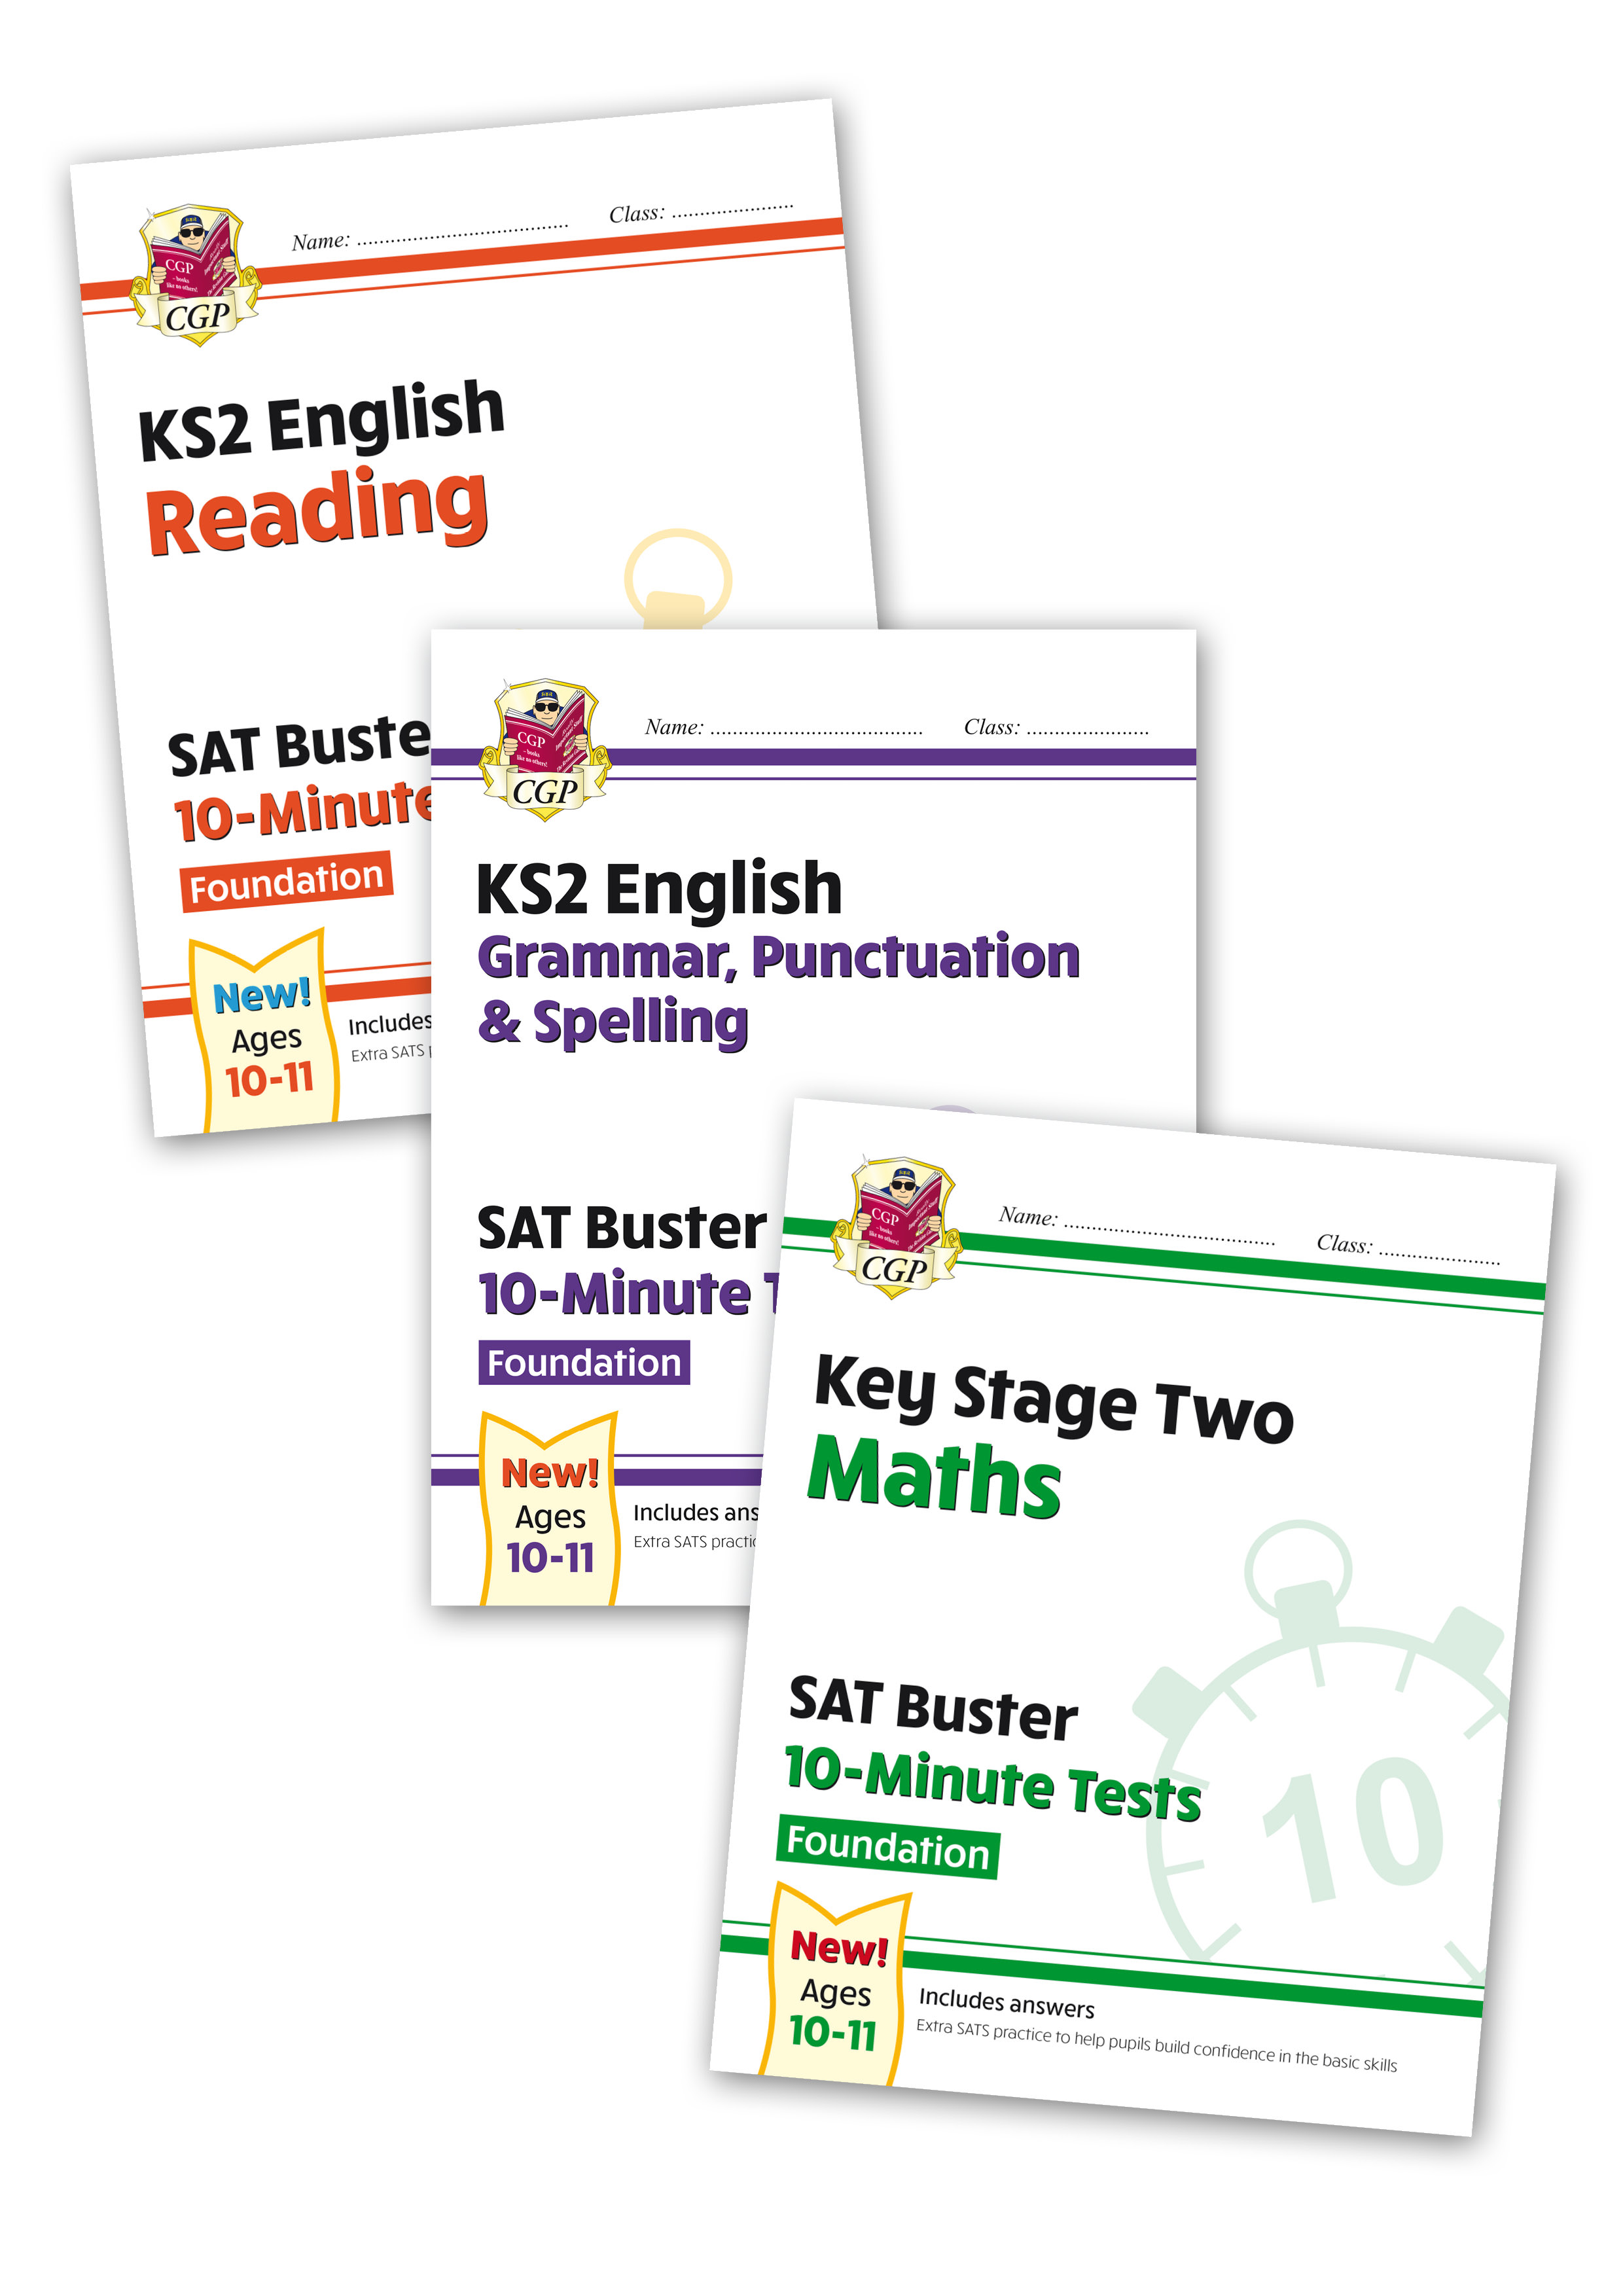 EMFXB21 - New Complete KS2 Maths and English 10-Minute Test SAT Buster Foundation Bundle (for the 20